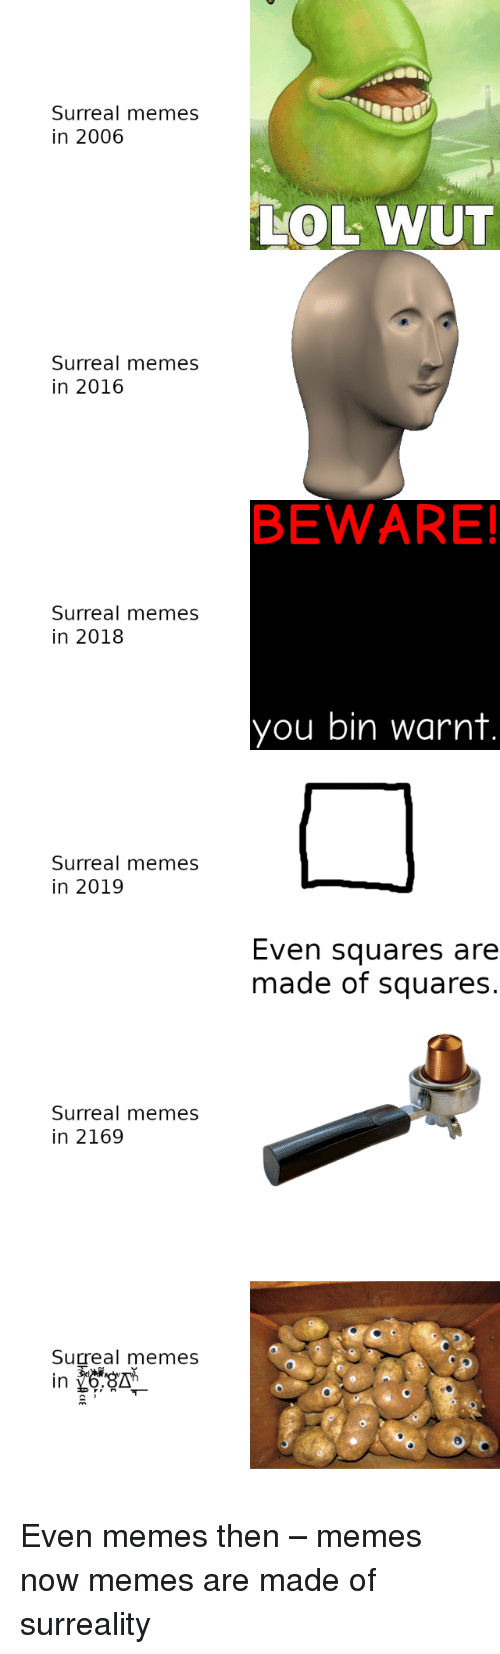 squares: Surreal memes  in 2006  LOL WUT  Surreal memes  in 2016  BEWARE!  Surreal memes  in 2018  you bin warnt  Surreal memes  in 2019  Even squares are  made of squares.  Surreal memes  in 2169  Surreal memes Even memes then – memes now memes are made of surreality